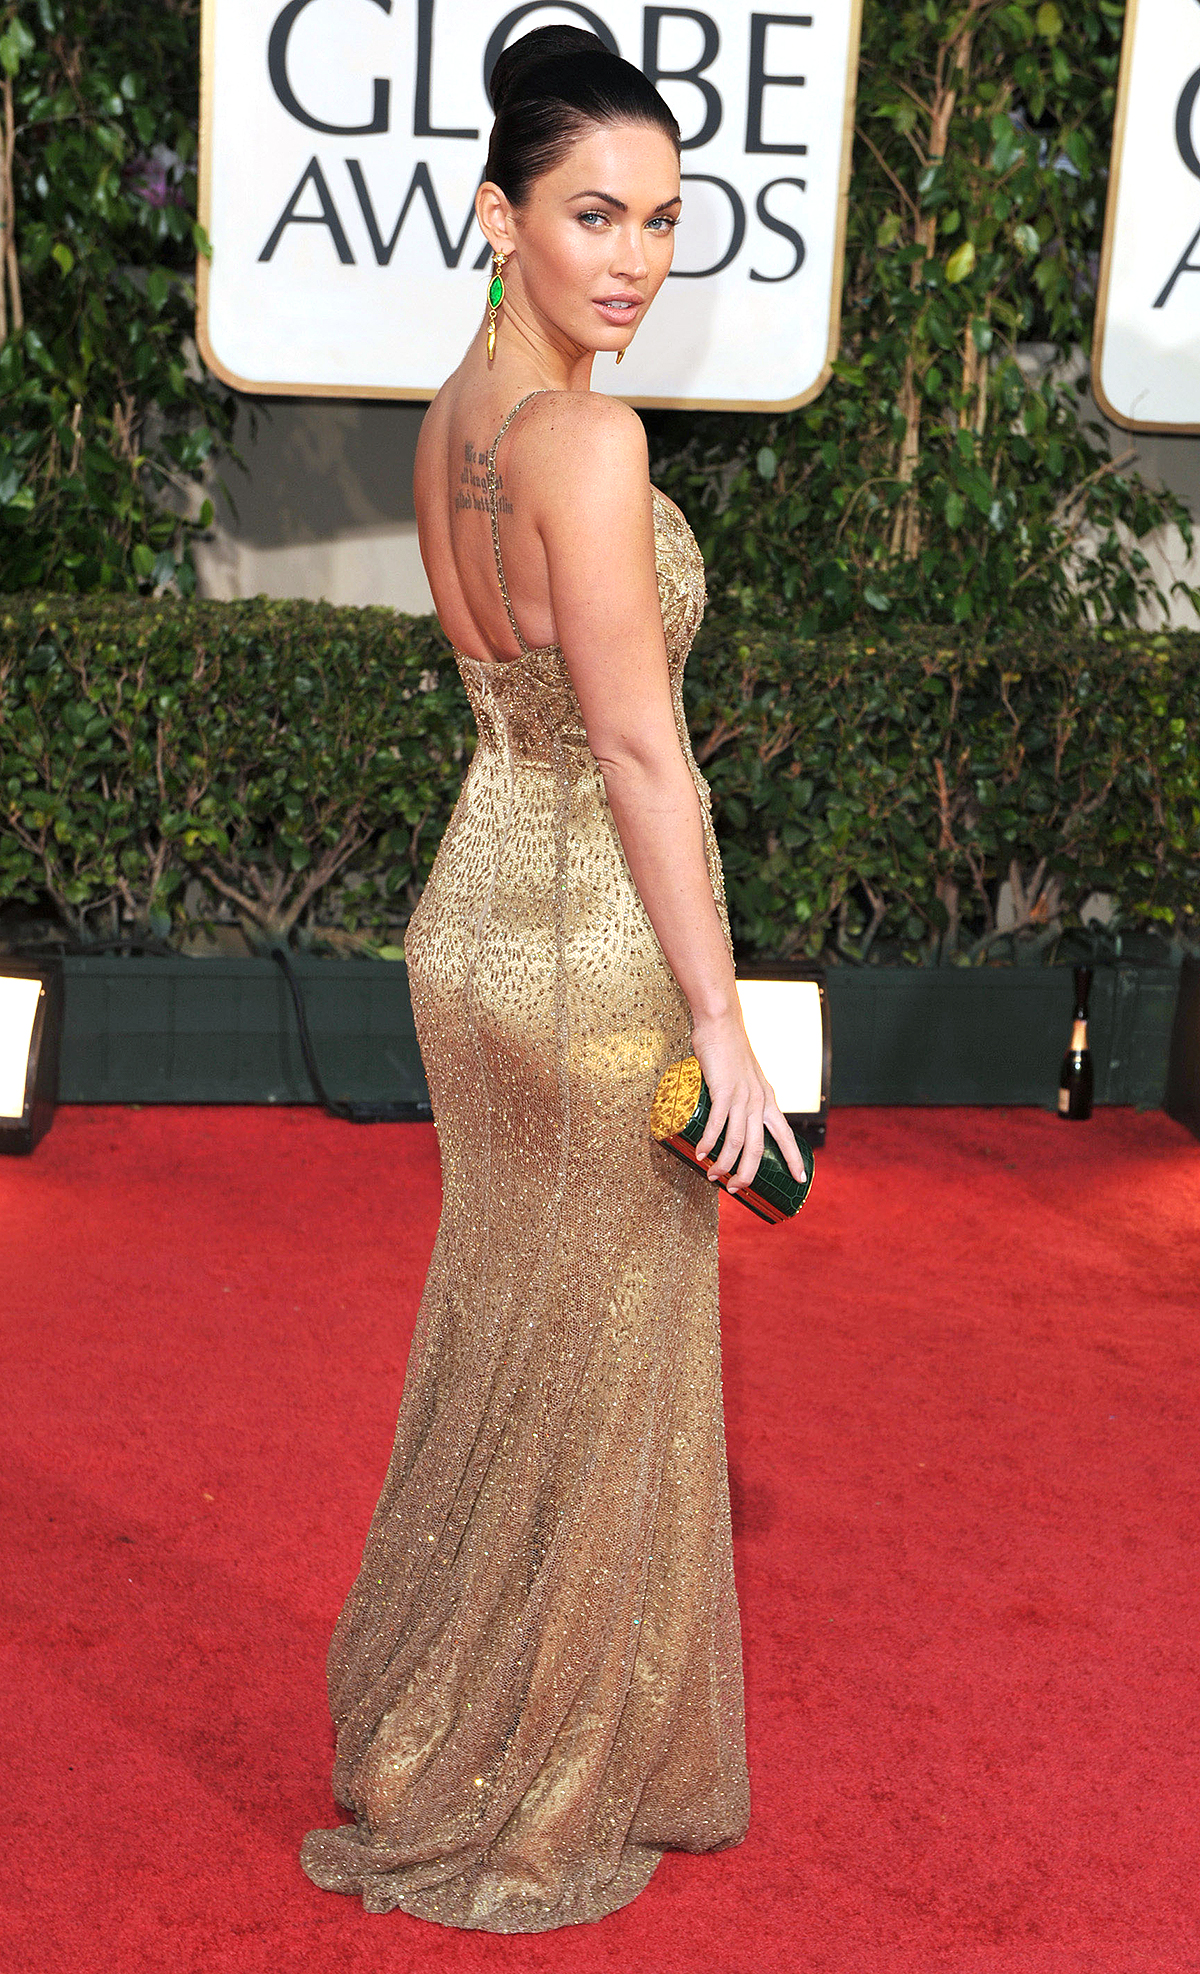 HOLLYWOOD - JANUARY 11: Megan Fox arrives at The 66th Annual Golden Globe Awards at The Beverly Hilton Hotel on January 11, 2009 in Hollywood, Californ